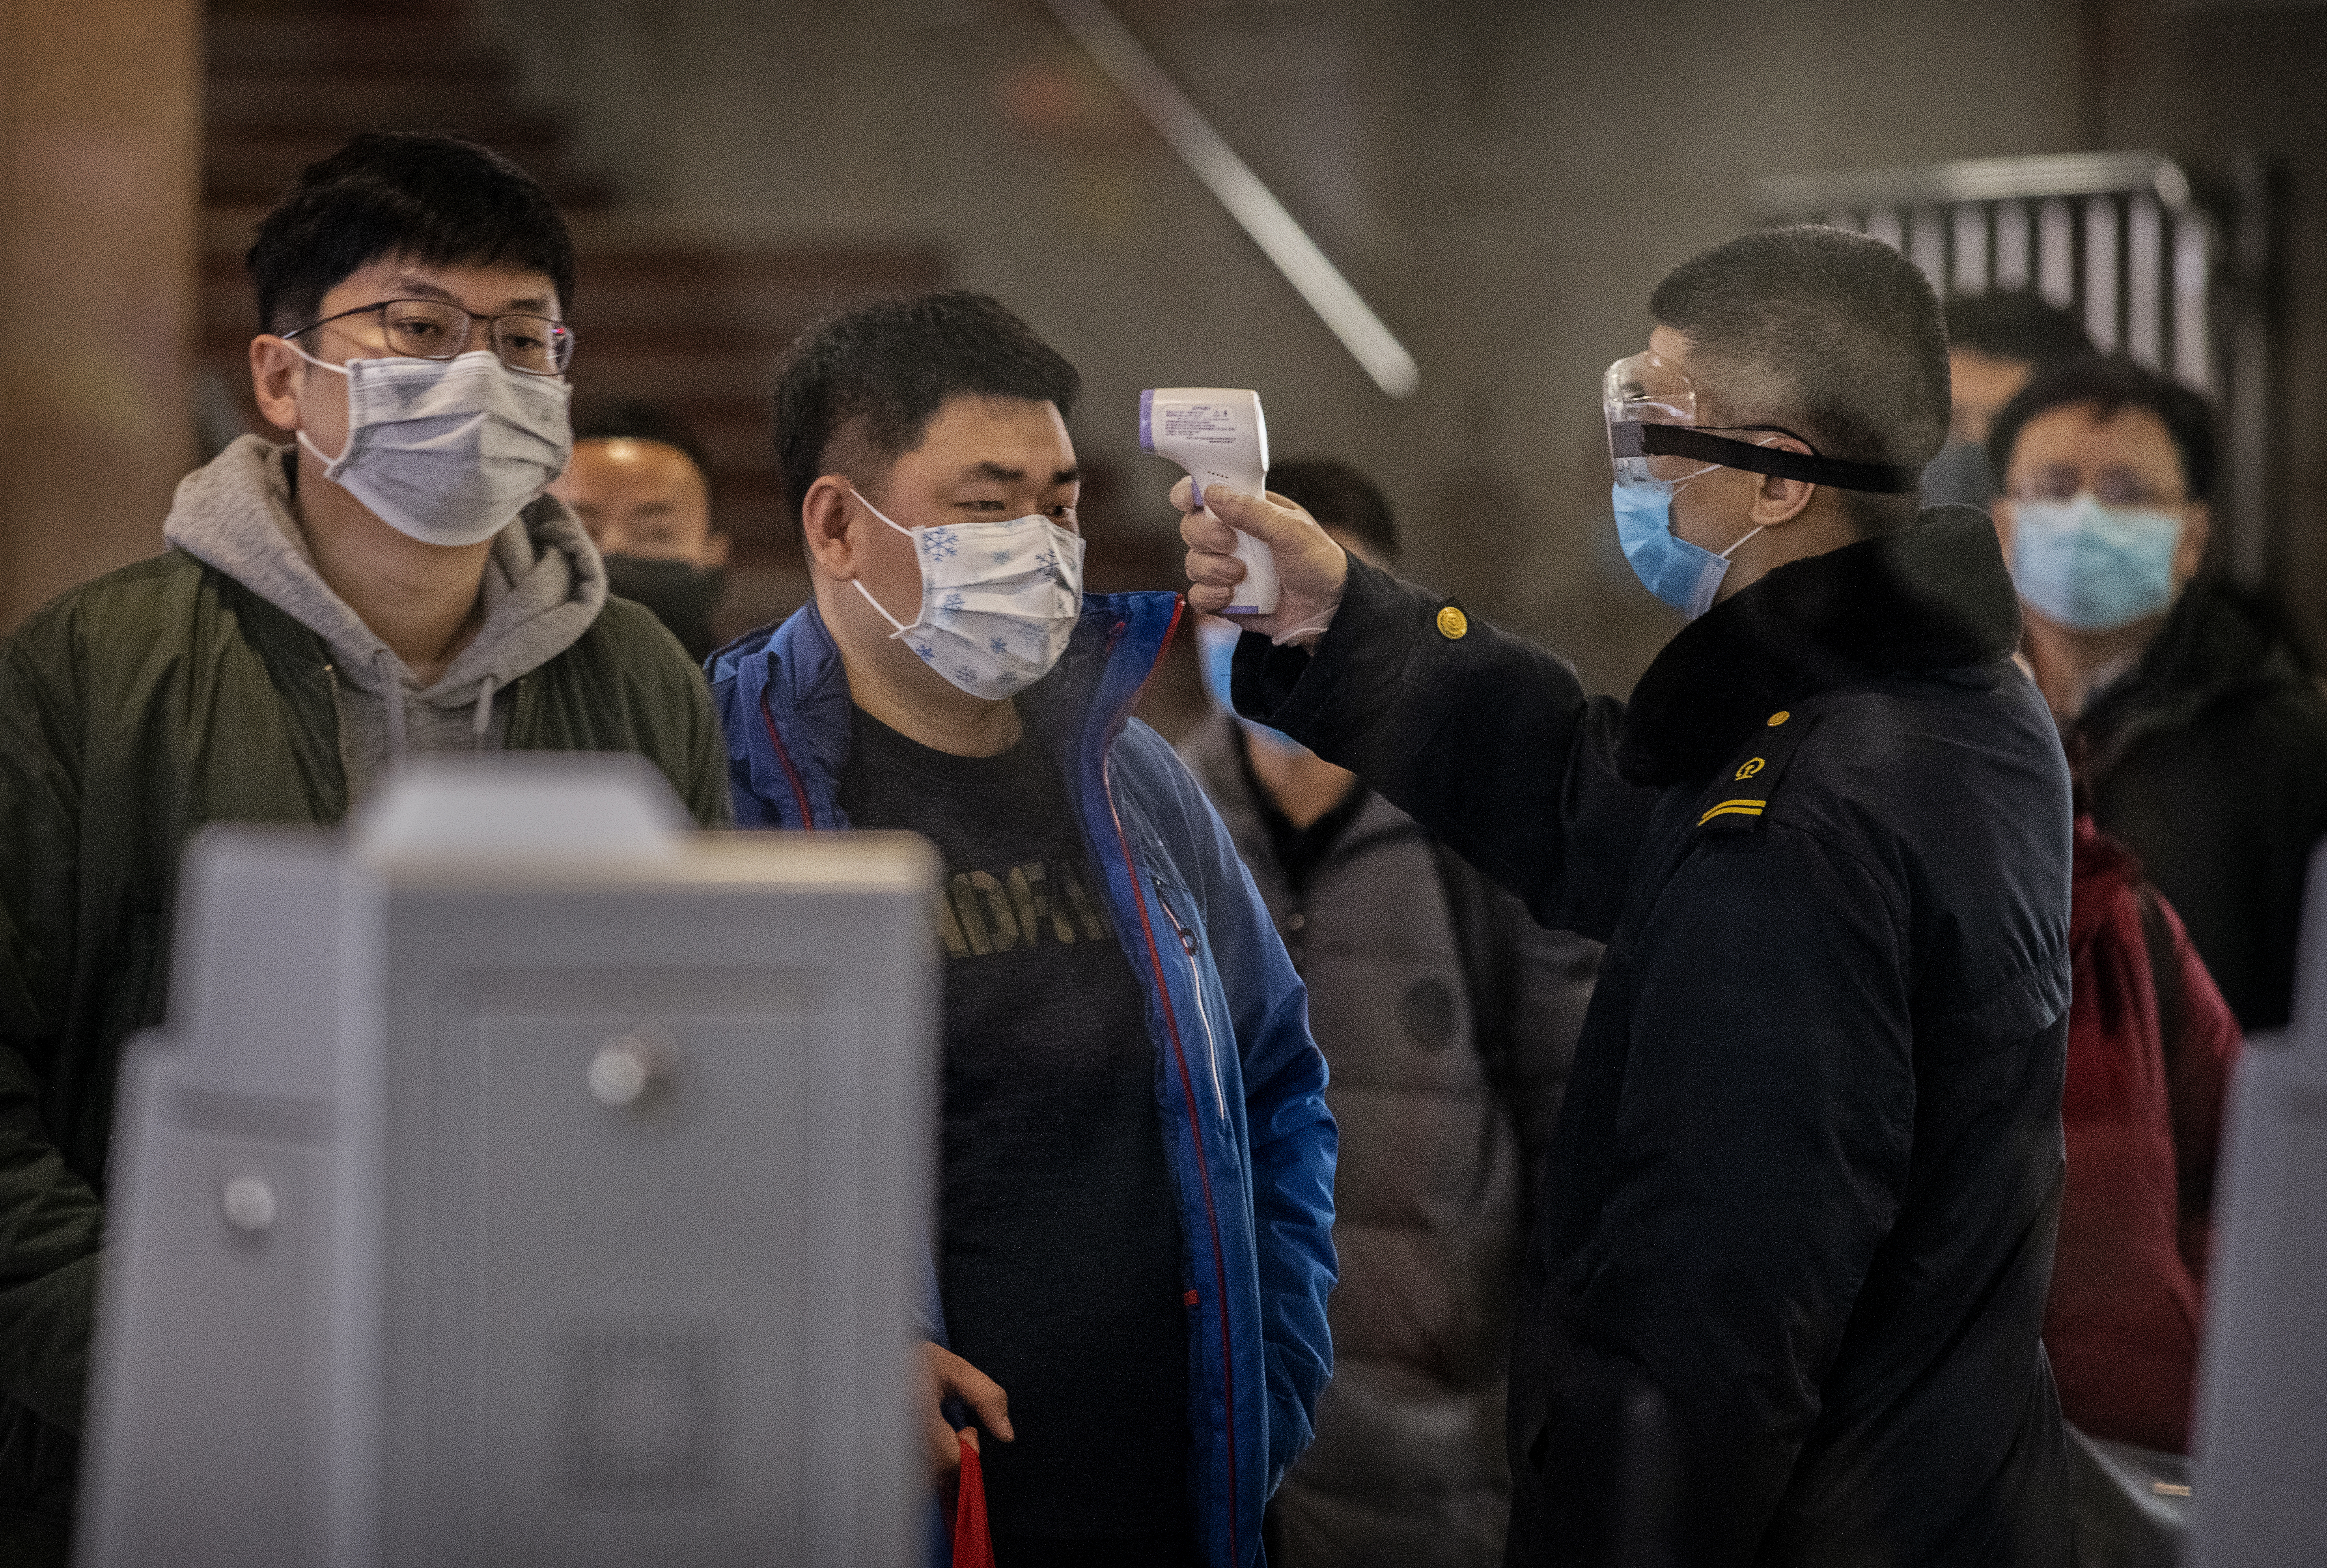 A Chinese passenger that just arrived on the last bullet train from Wuhan to Beijing is checked for a fever by a health worker at a Beijing railway station on January 23, 2020 in Beijing, China. (Photo by Kevin Frayer/Getty Images)